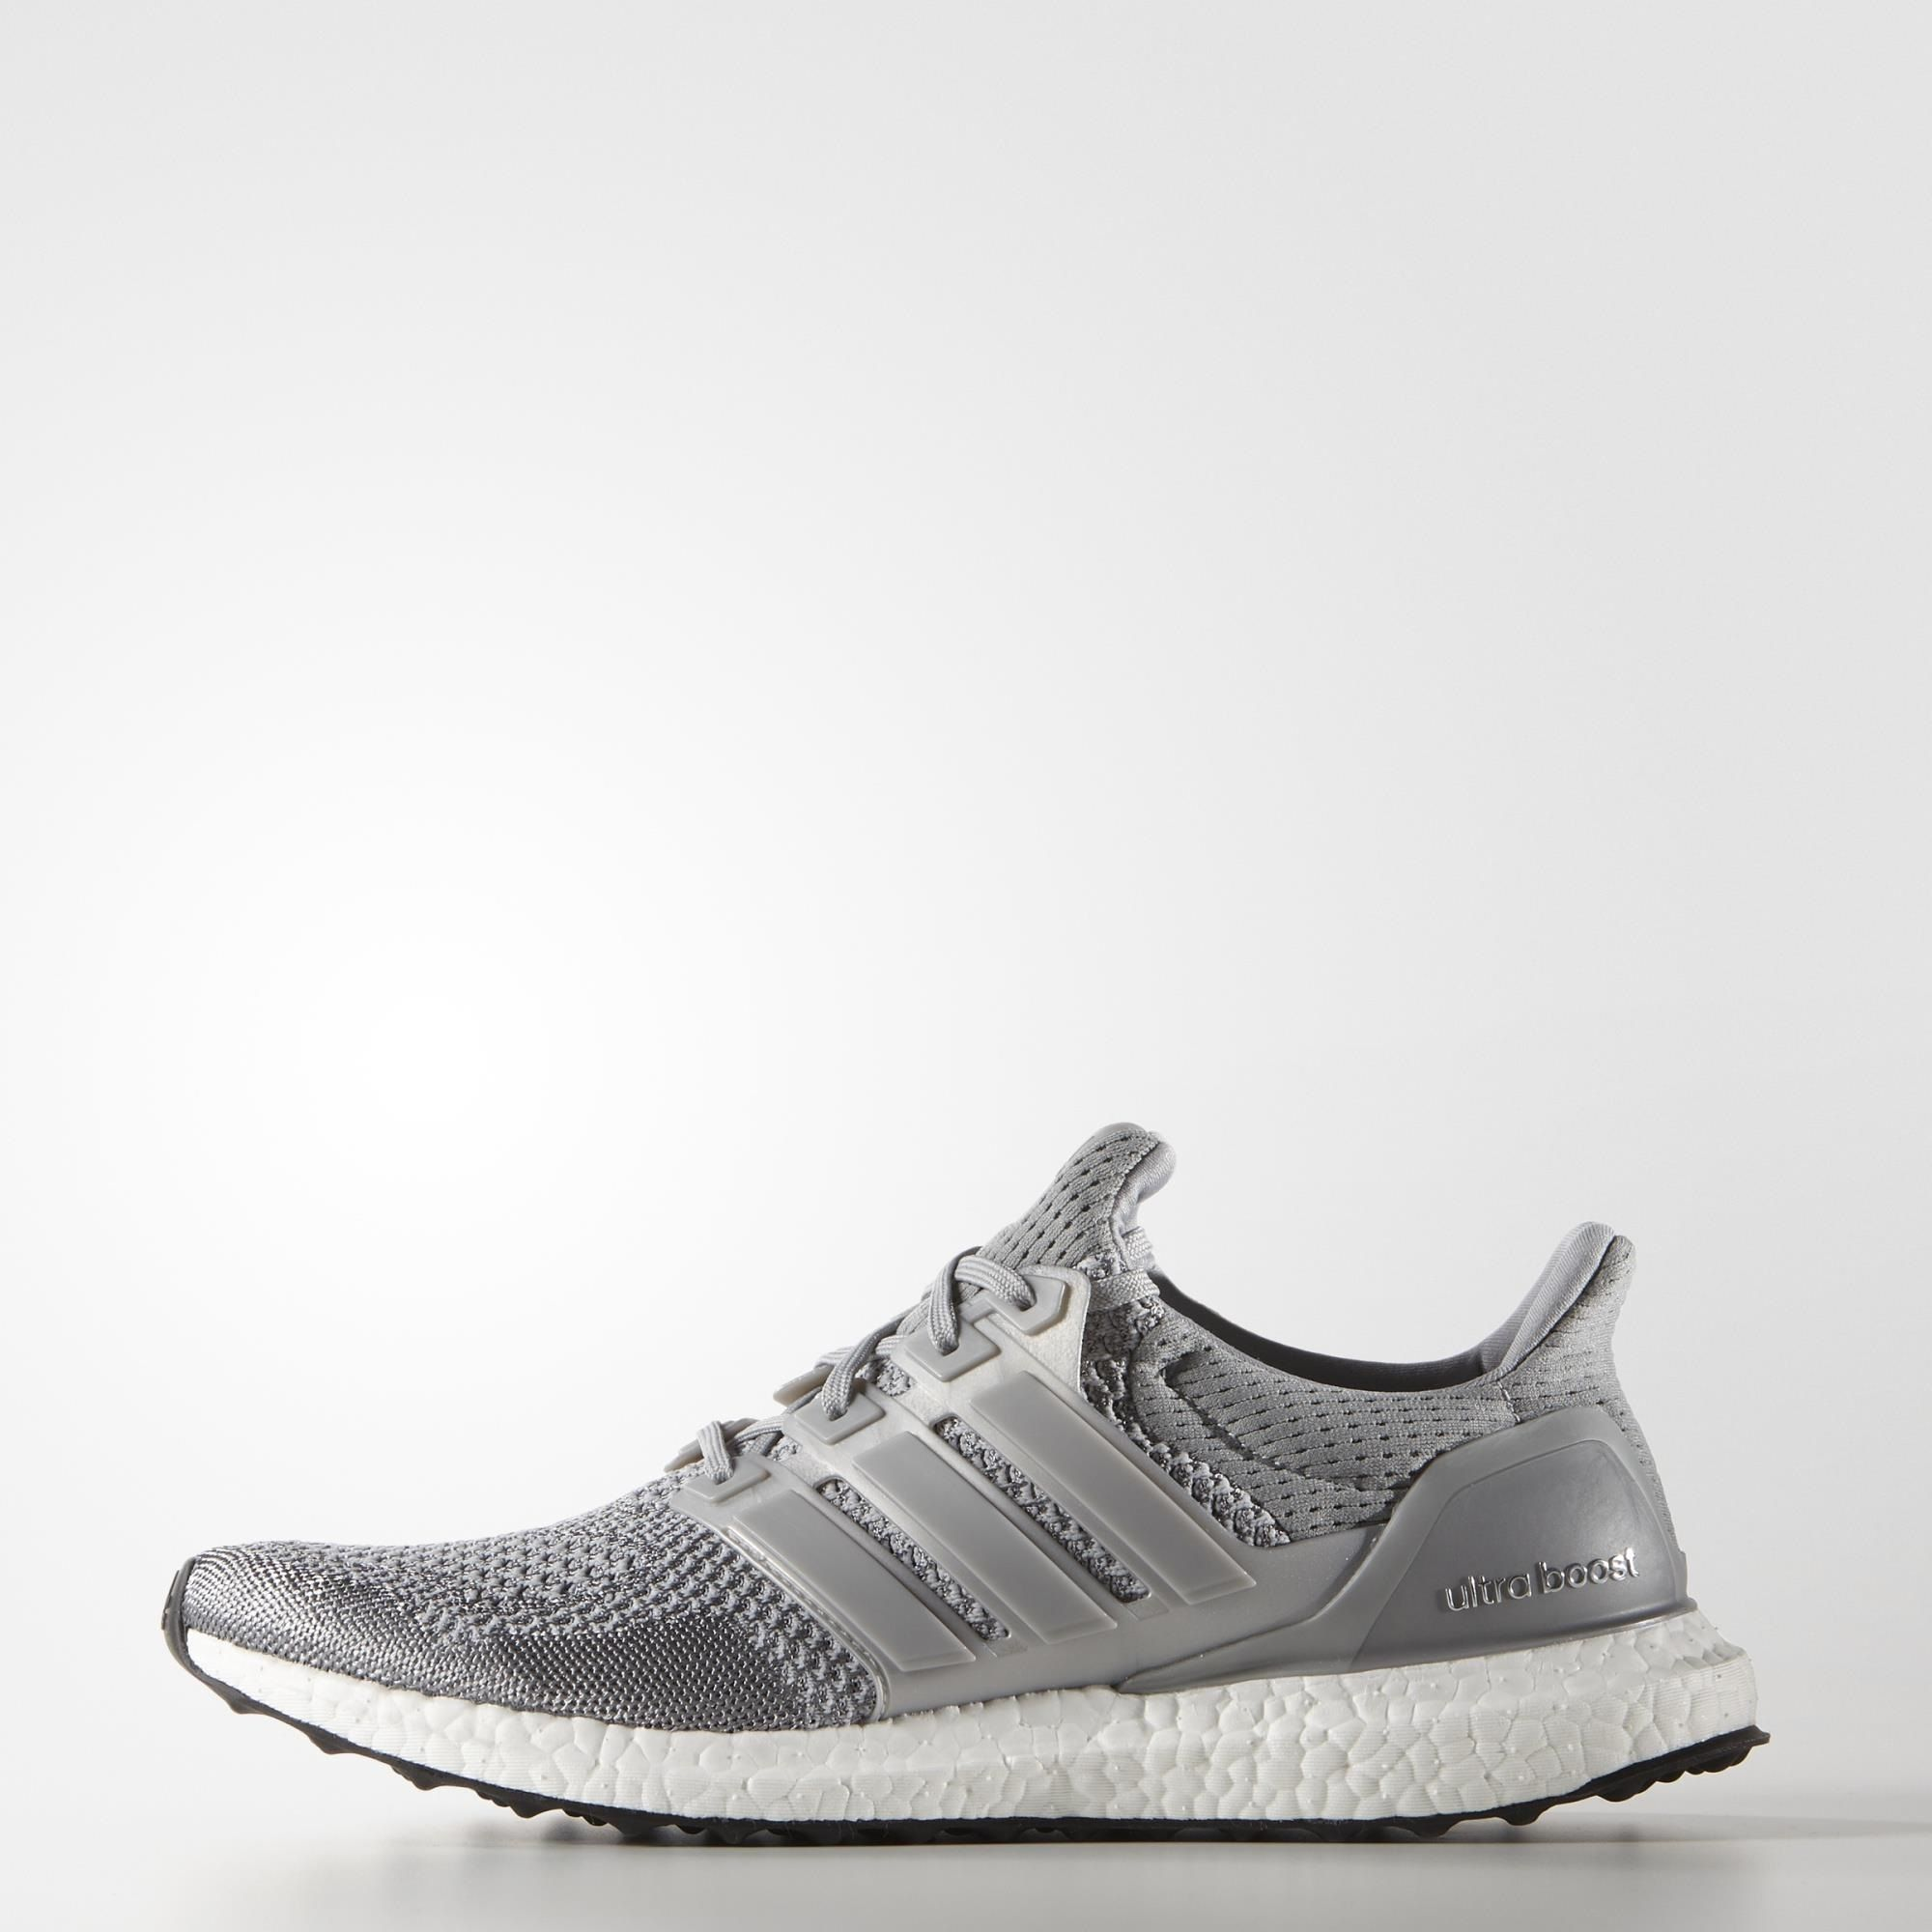 adidas online nz shop